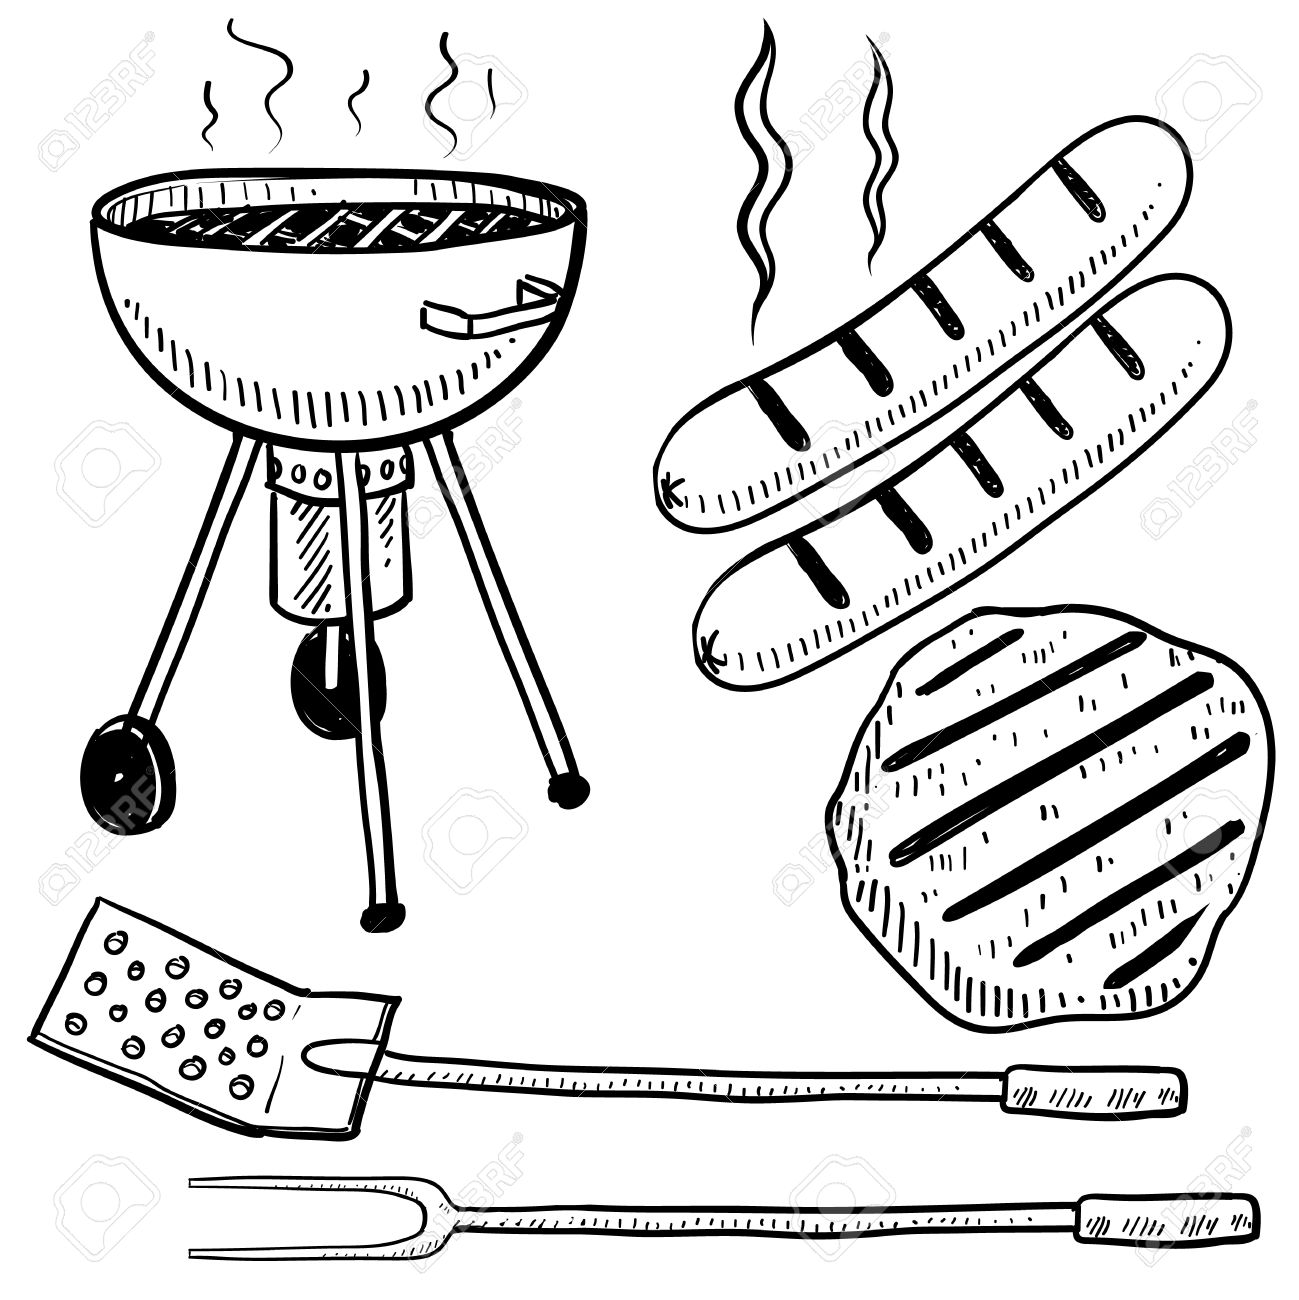 doodle style backyard cookout or grill gear in vector format